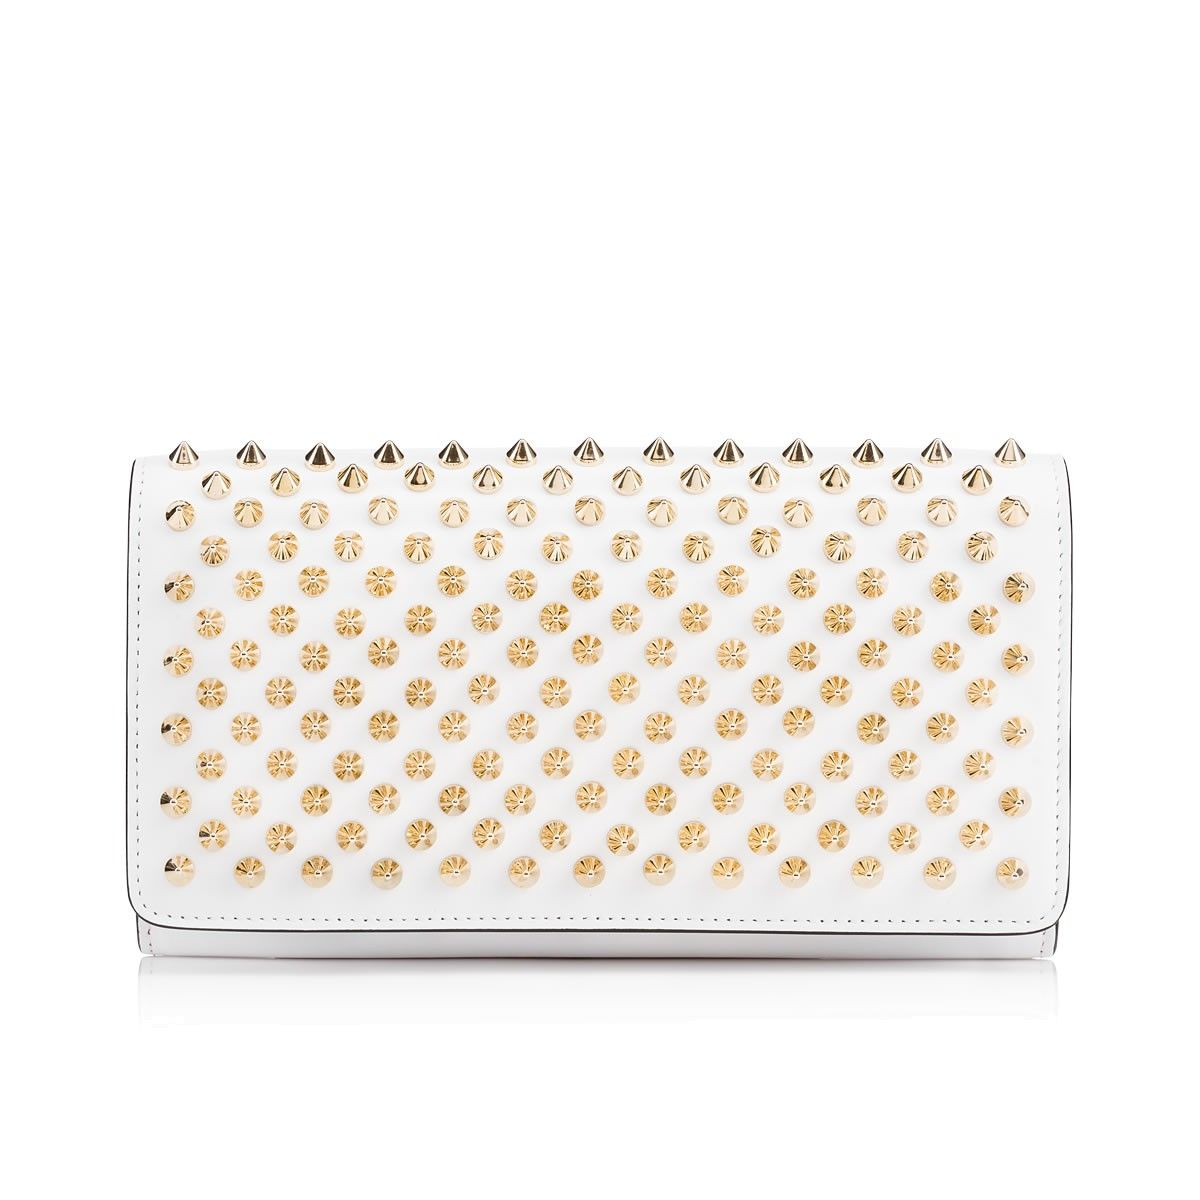 e843ad17a24 CHRISTIAN LOUBOUTIN Macaron Continental Wallet With Flap, White ...